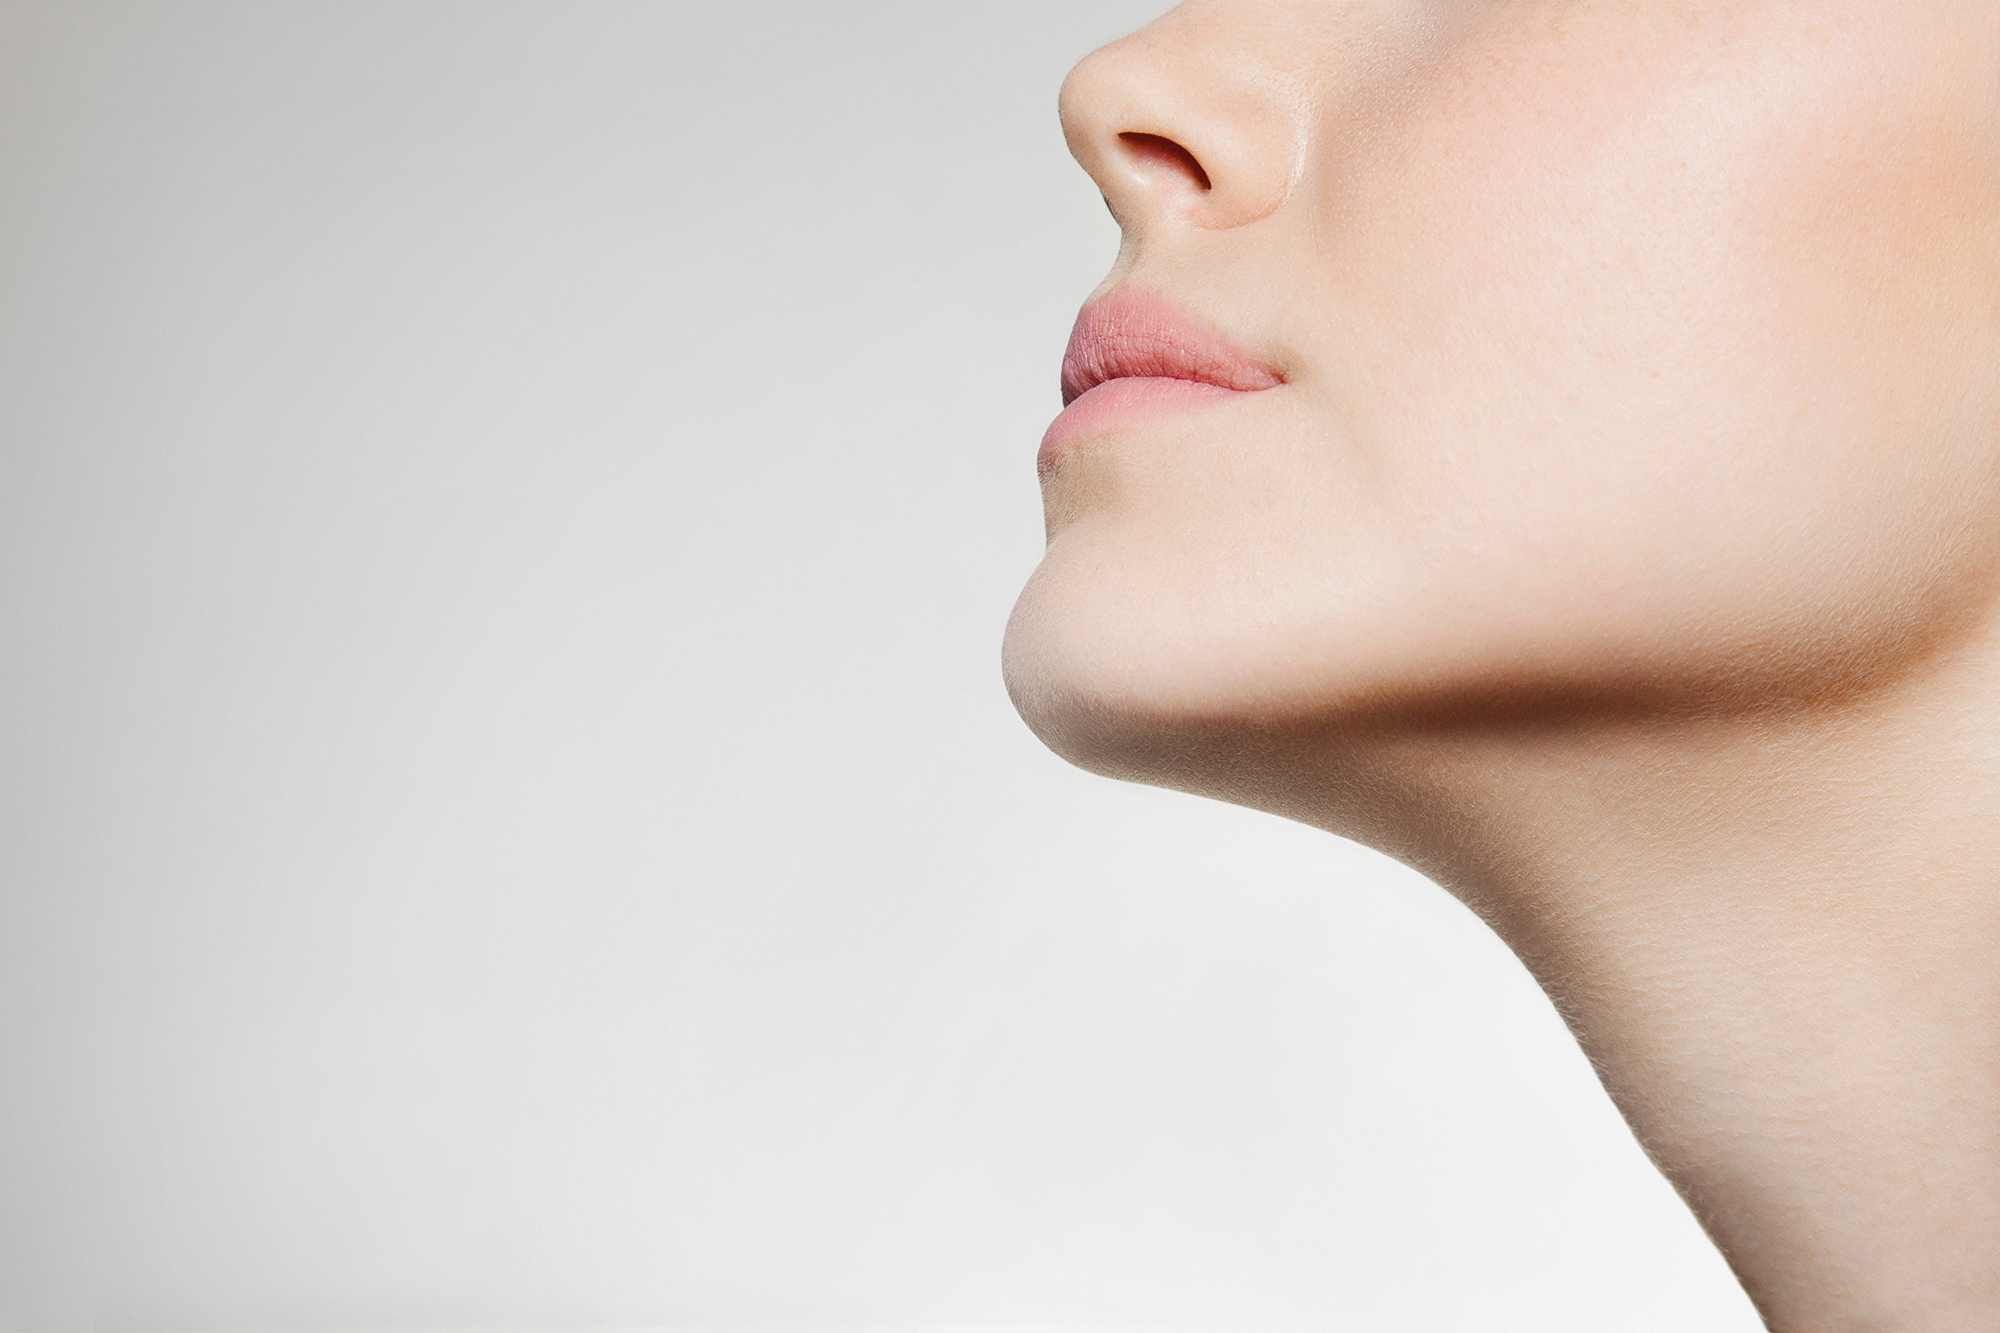 Woman's jawline, neck